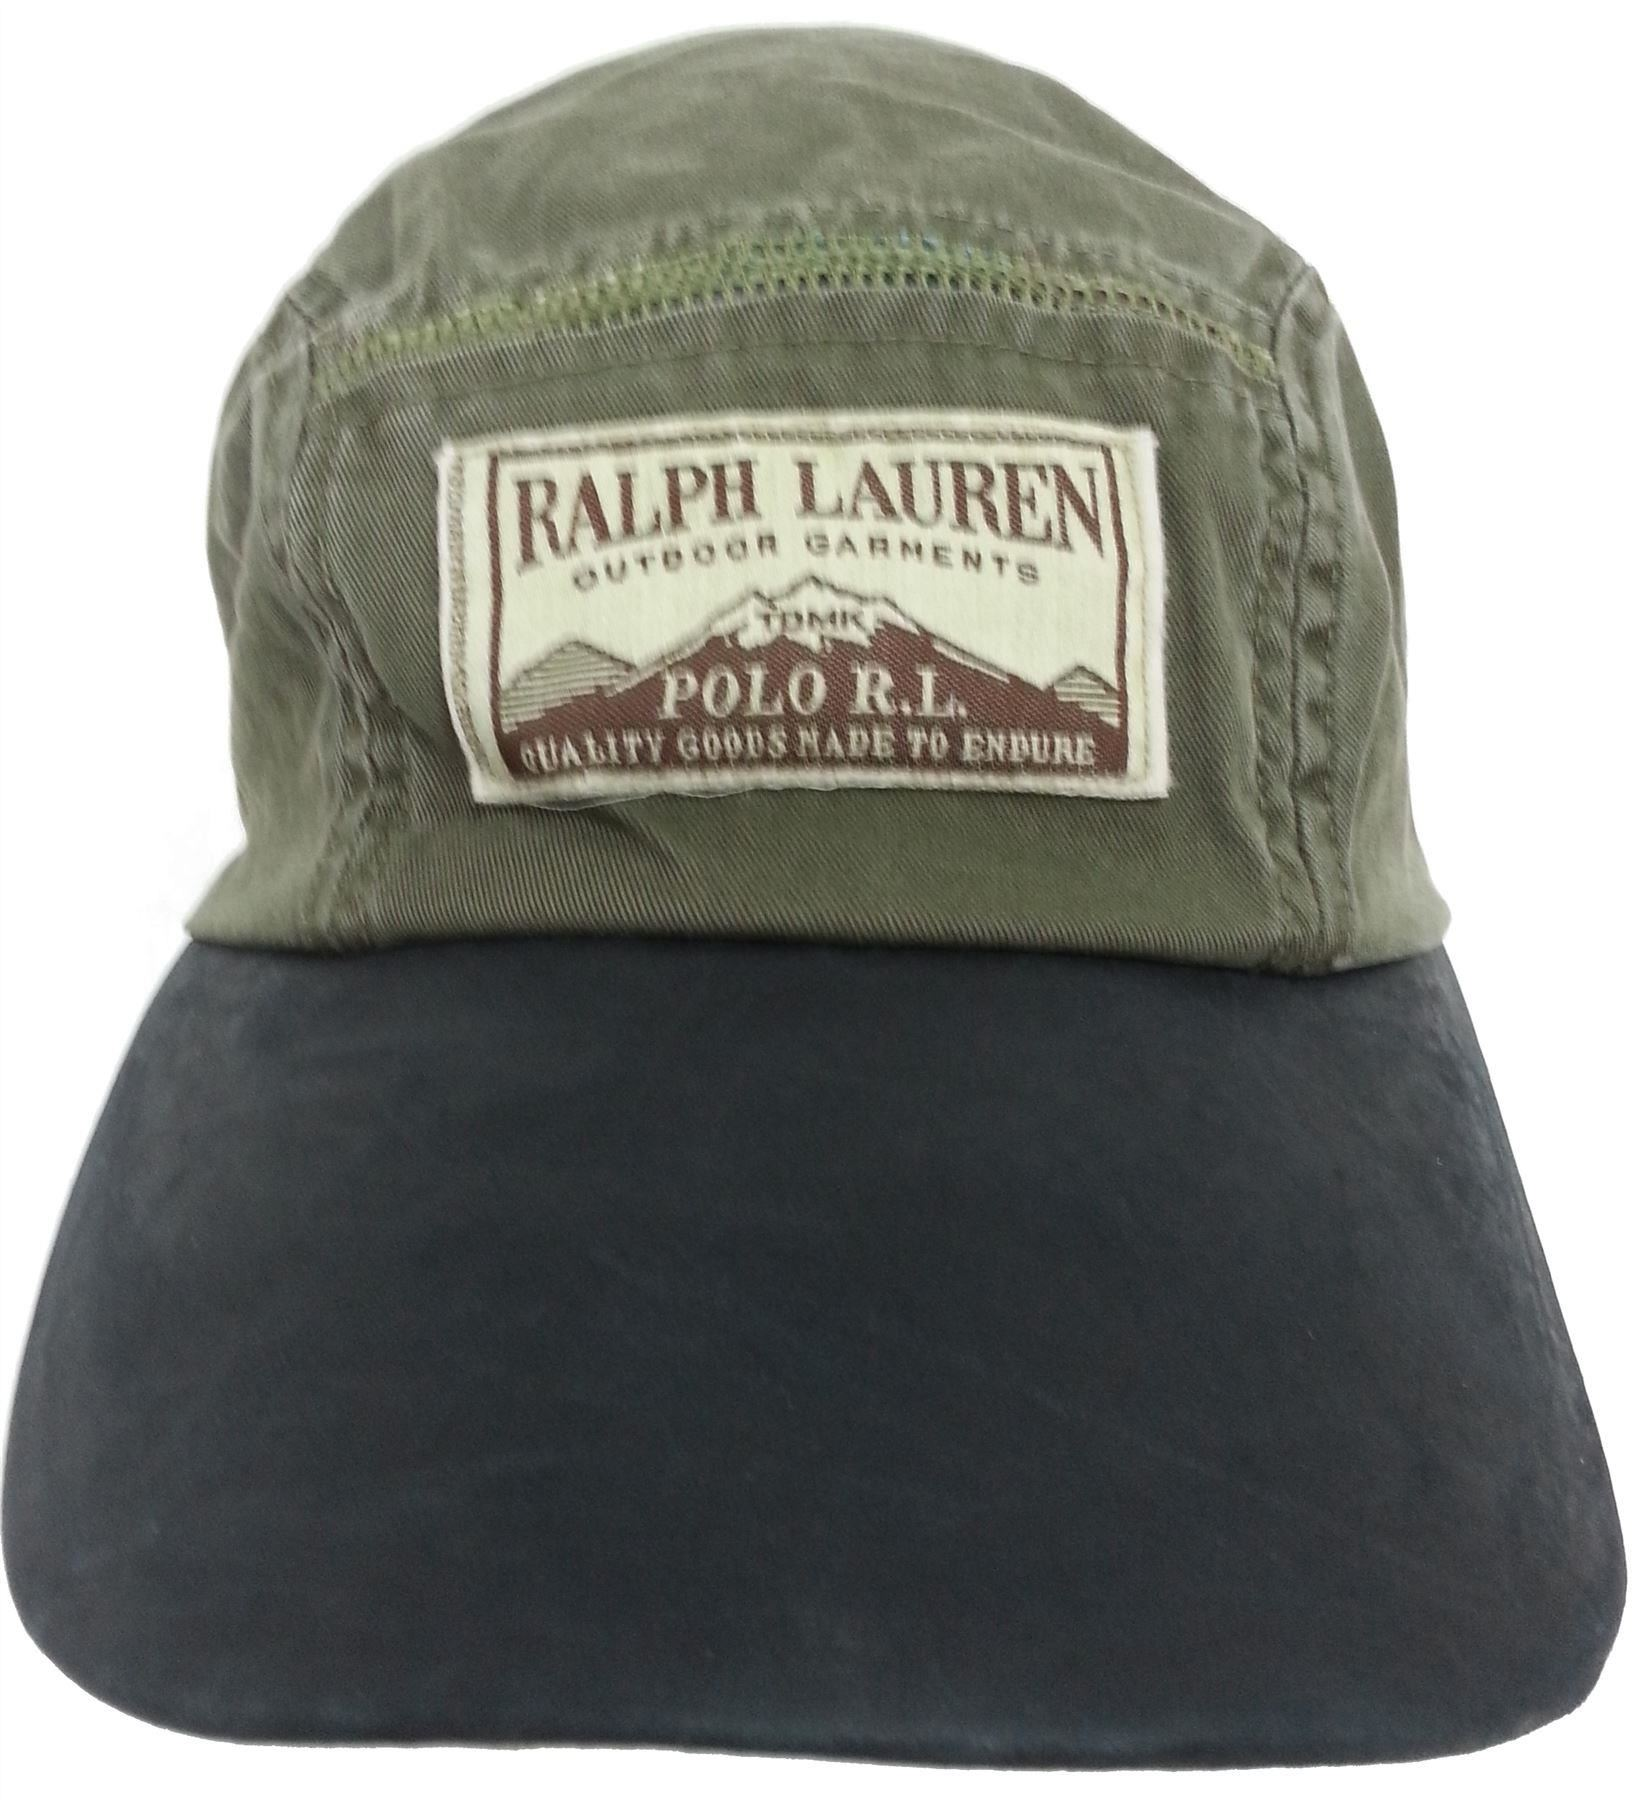 polo ralph lauren olive green outdoor garments polo rl adult baseball cap ebay. Black Bedroom Furniture Sets. Home Design Ideas